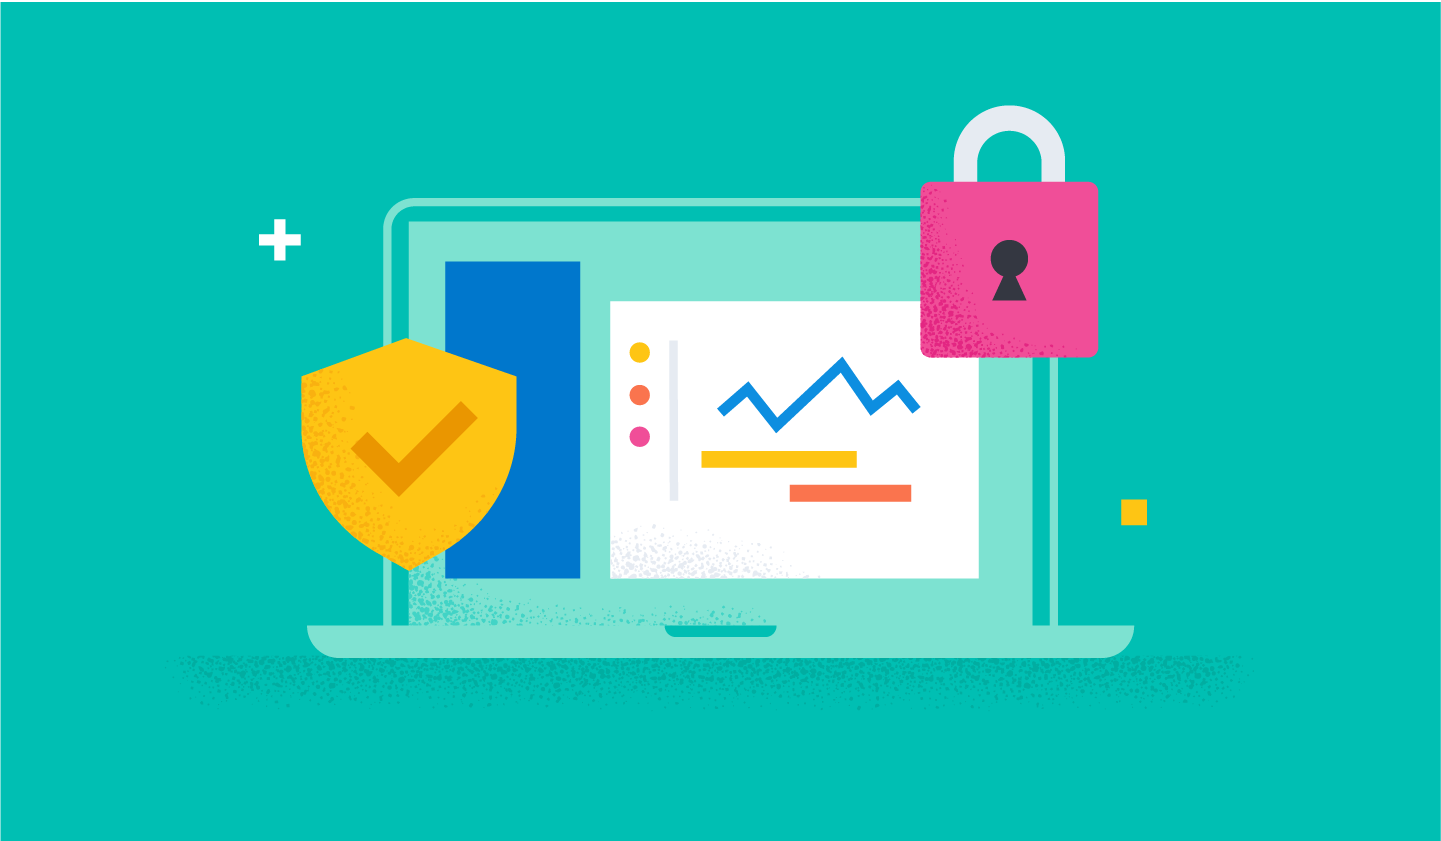 Video for Implementing Elastic security in highly regulated environments